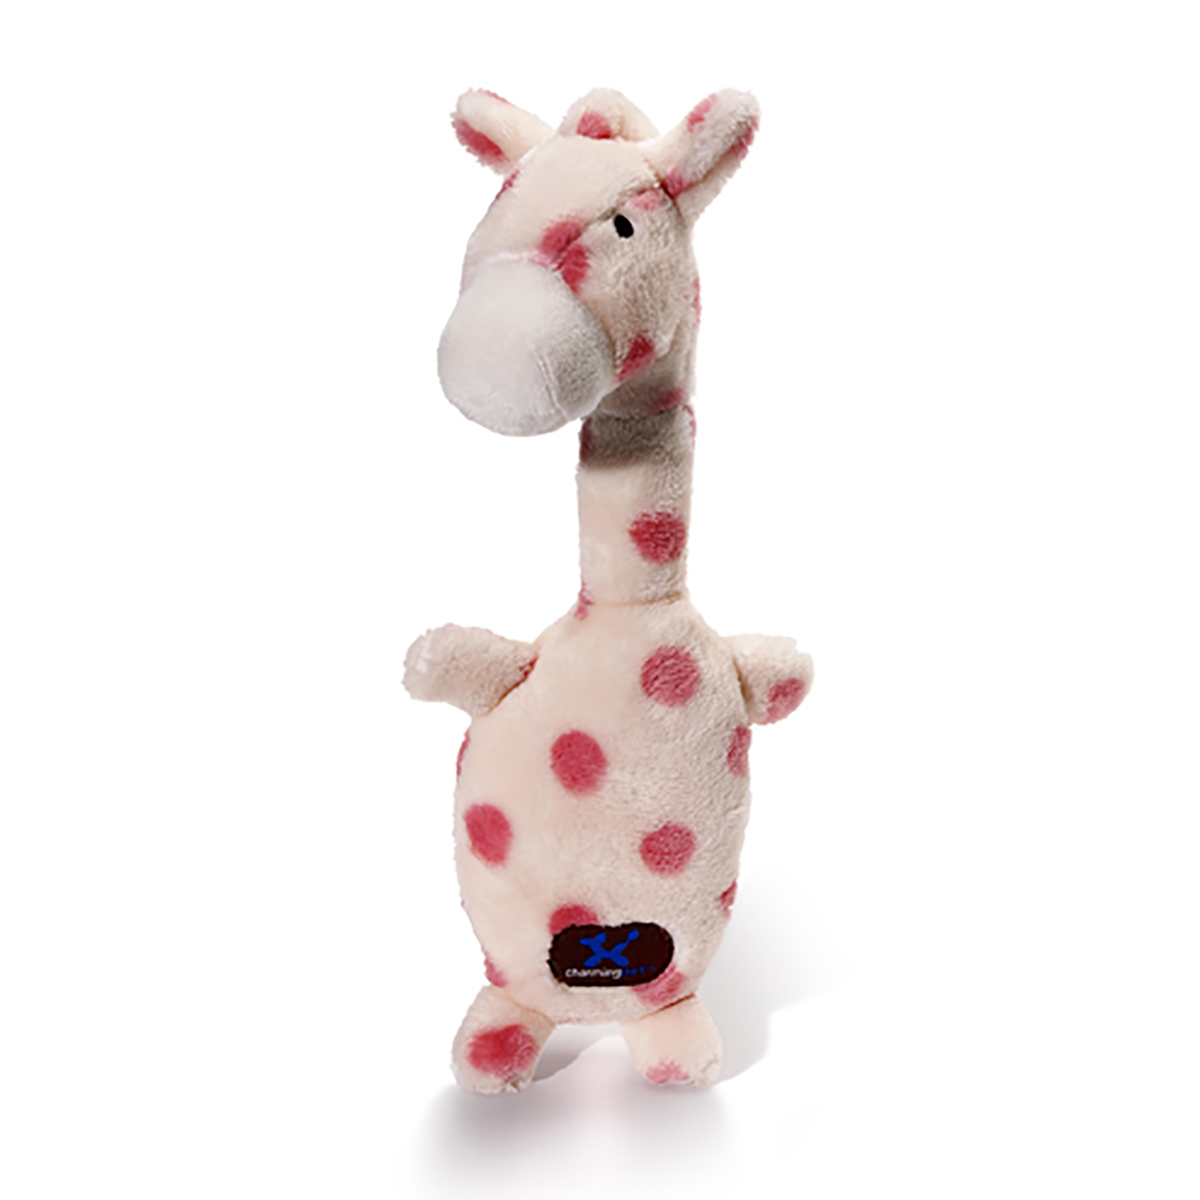 Poppin' Polkies Dog Toy - Horse